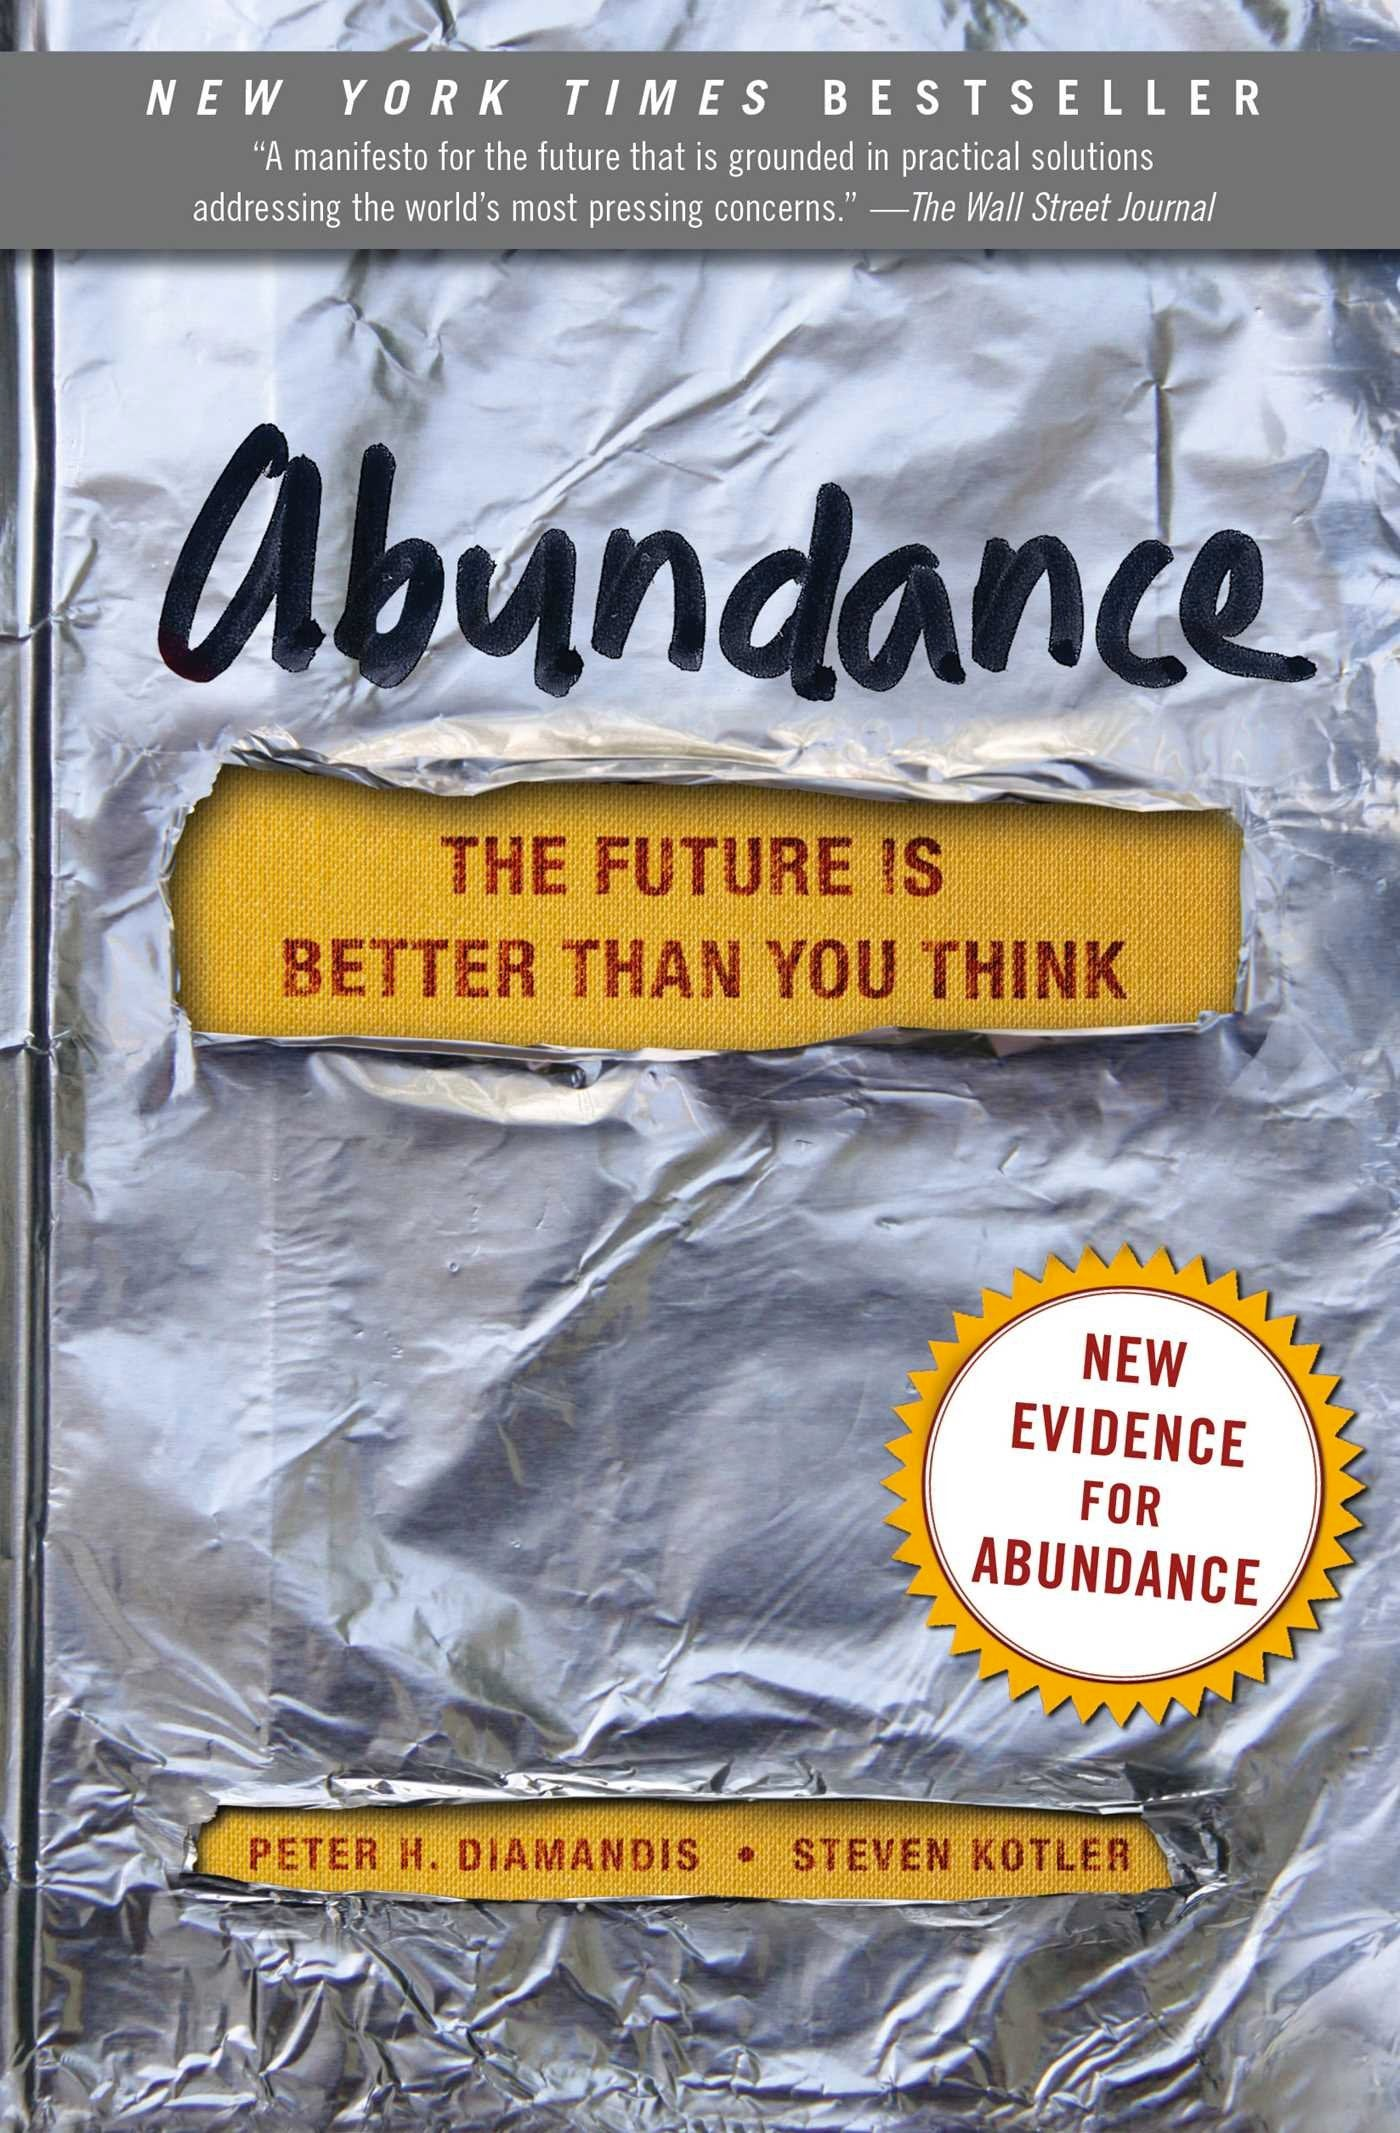 Abundance: The Future is Better Than You Think by Peter Diamandis and Steven Kotler